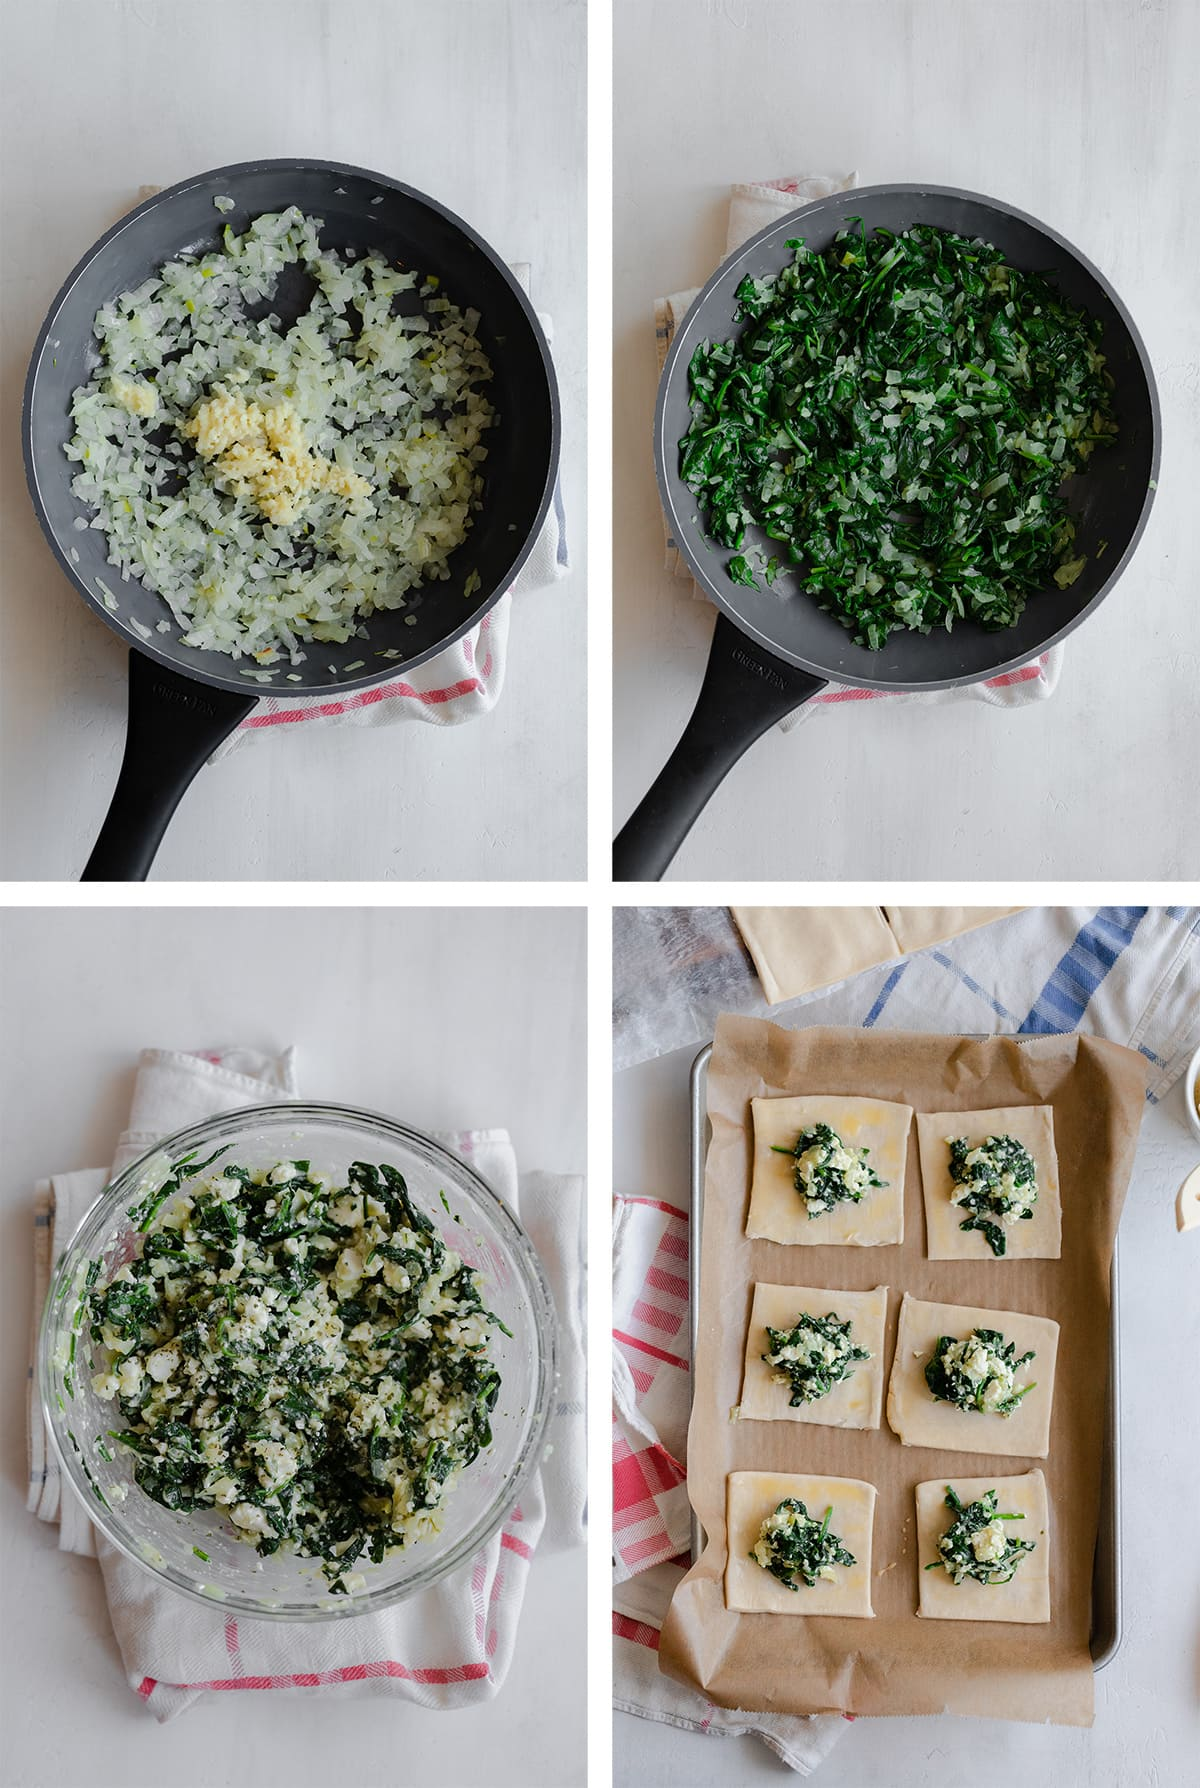 Step by step on how to make the filling for the Spinach and Feta Triangles -sauteeing the onion and garlic, adding spinach, mixing in the feta, and egg. And dividing it between the puff pastry squares.